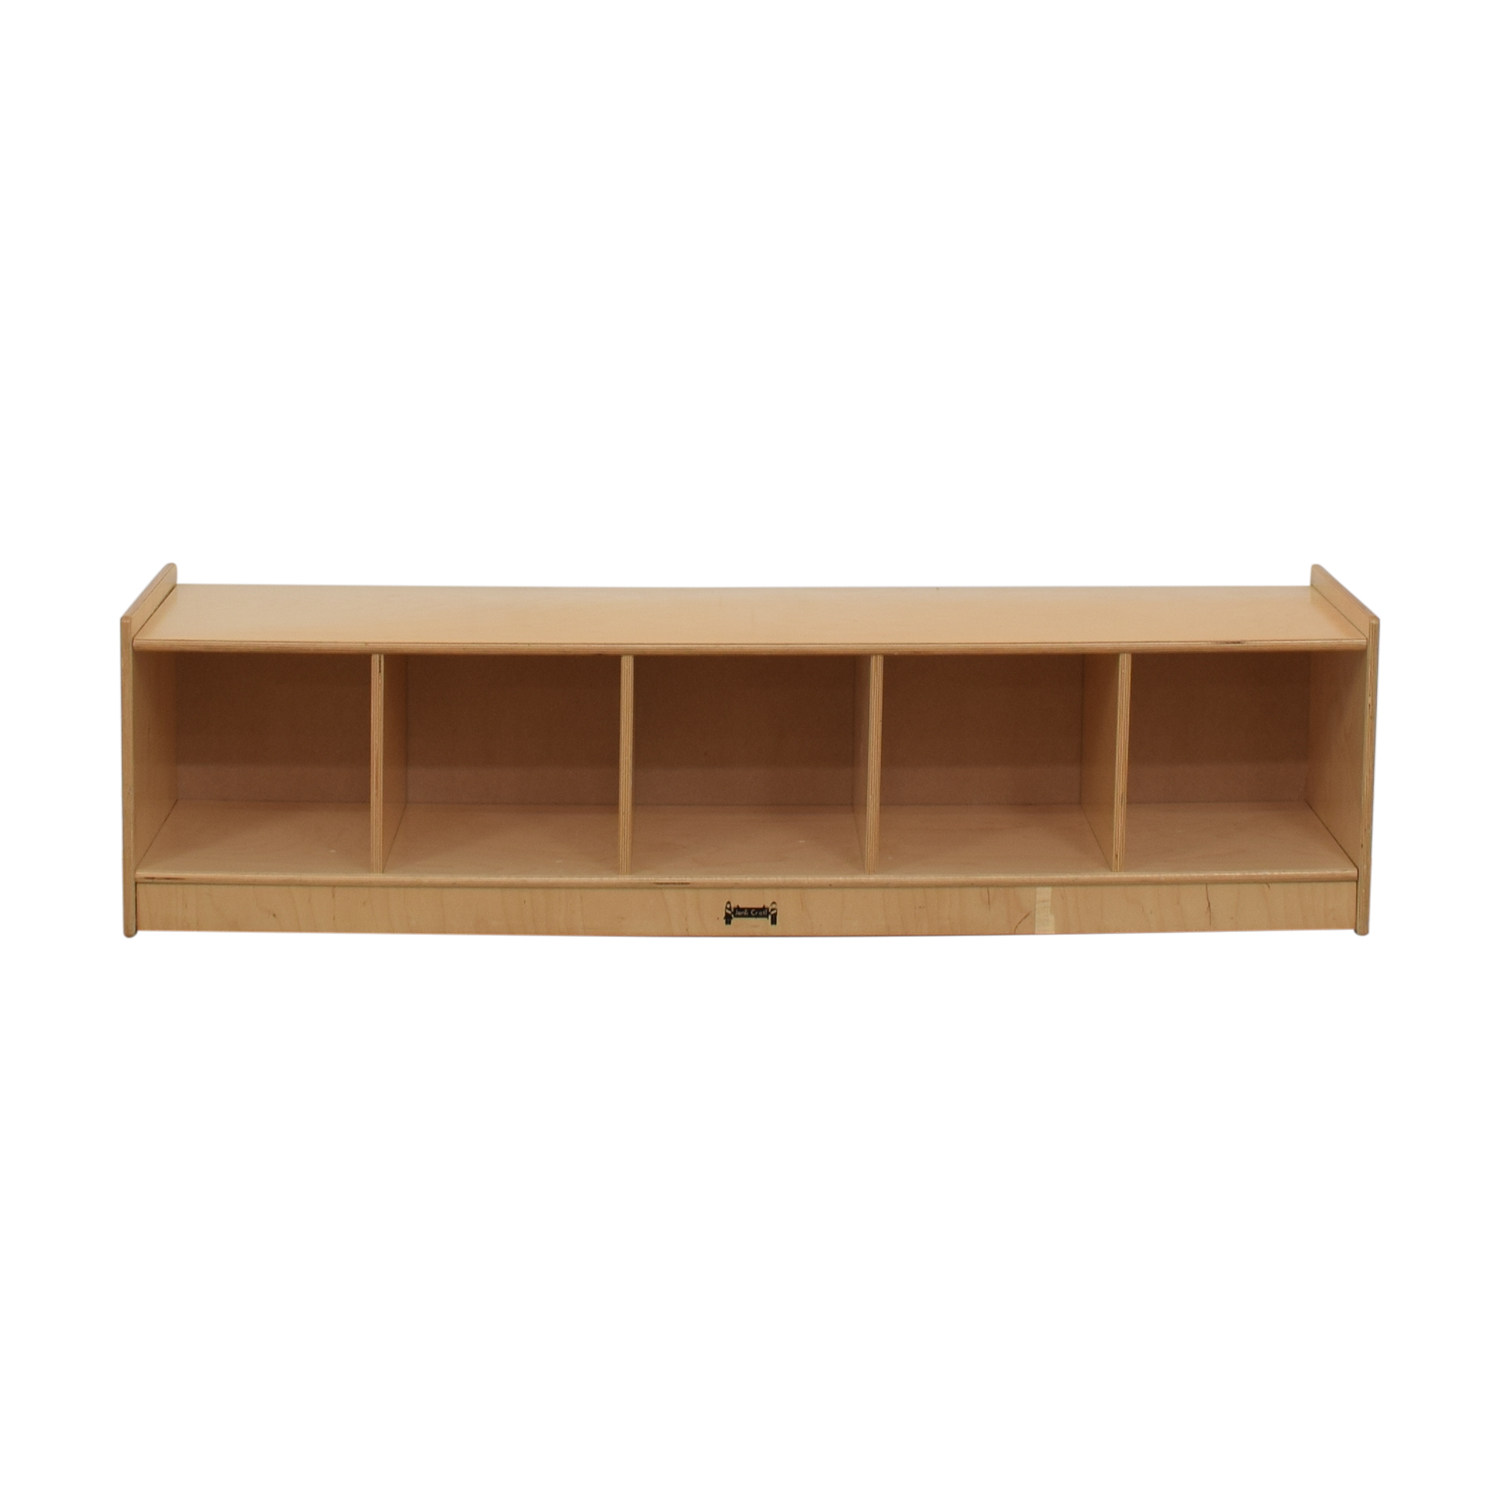 buy Jonti-Craft Children's Lateral Bookshelf  Bookcases & Shelving